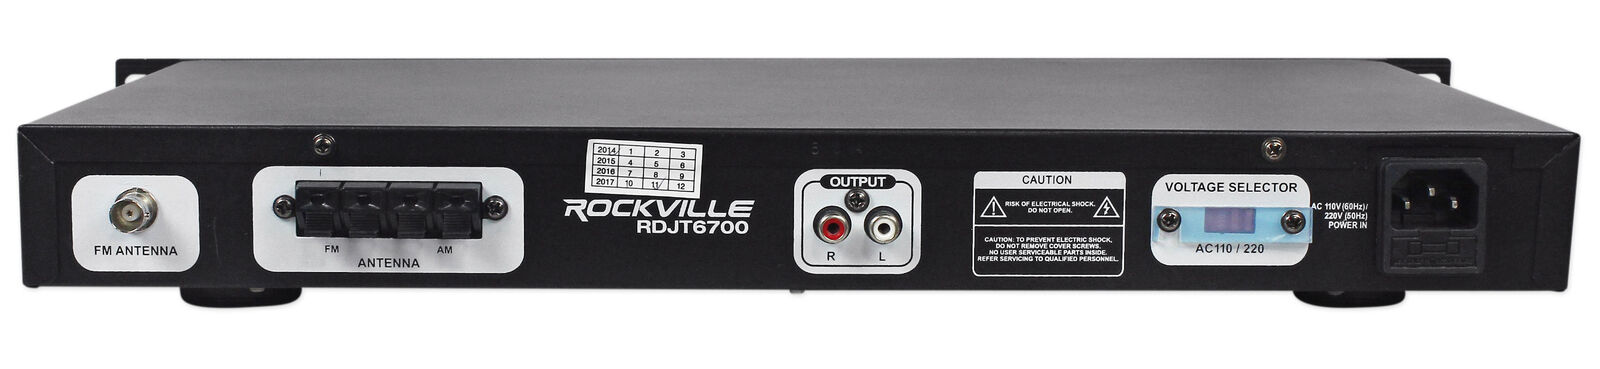 "Rockville RDJT6700 19/""/"" Rack Mount Digital AM//FM Radio Tuner Receiver With USB//S"